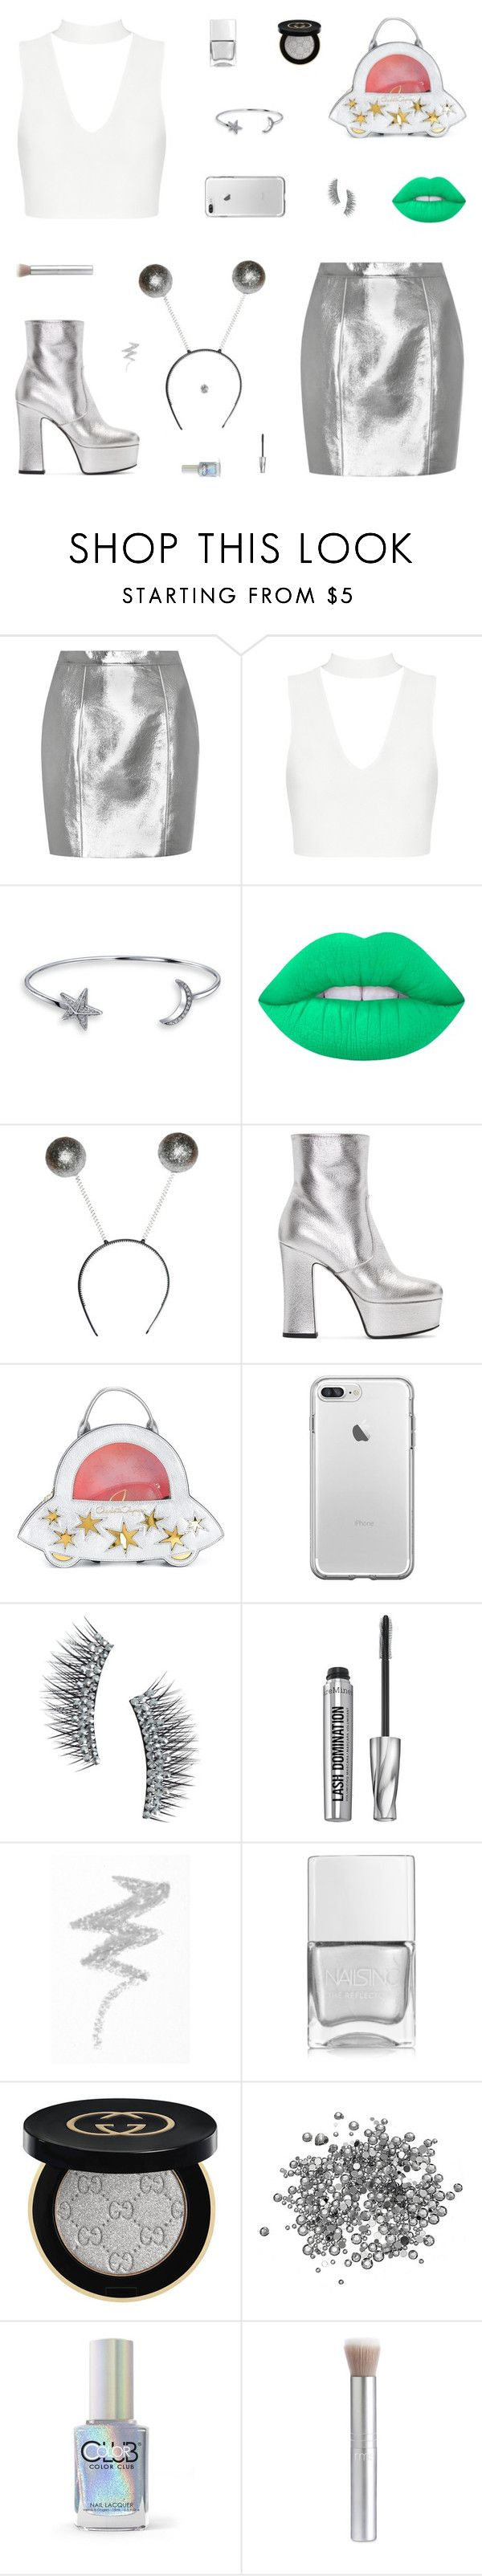 """""""Alien Costume"""" by belenloperfido ❤ liked on Polyvore featuring Yves Saint Laurent, Bling Jewelry, Lime Crime, Charlotte Olympia, Kre-at Beauty, Bare Escentuals, NYX, Nails Inc., Gucci and Color Club"""